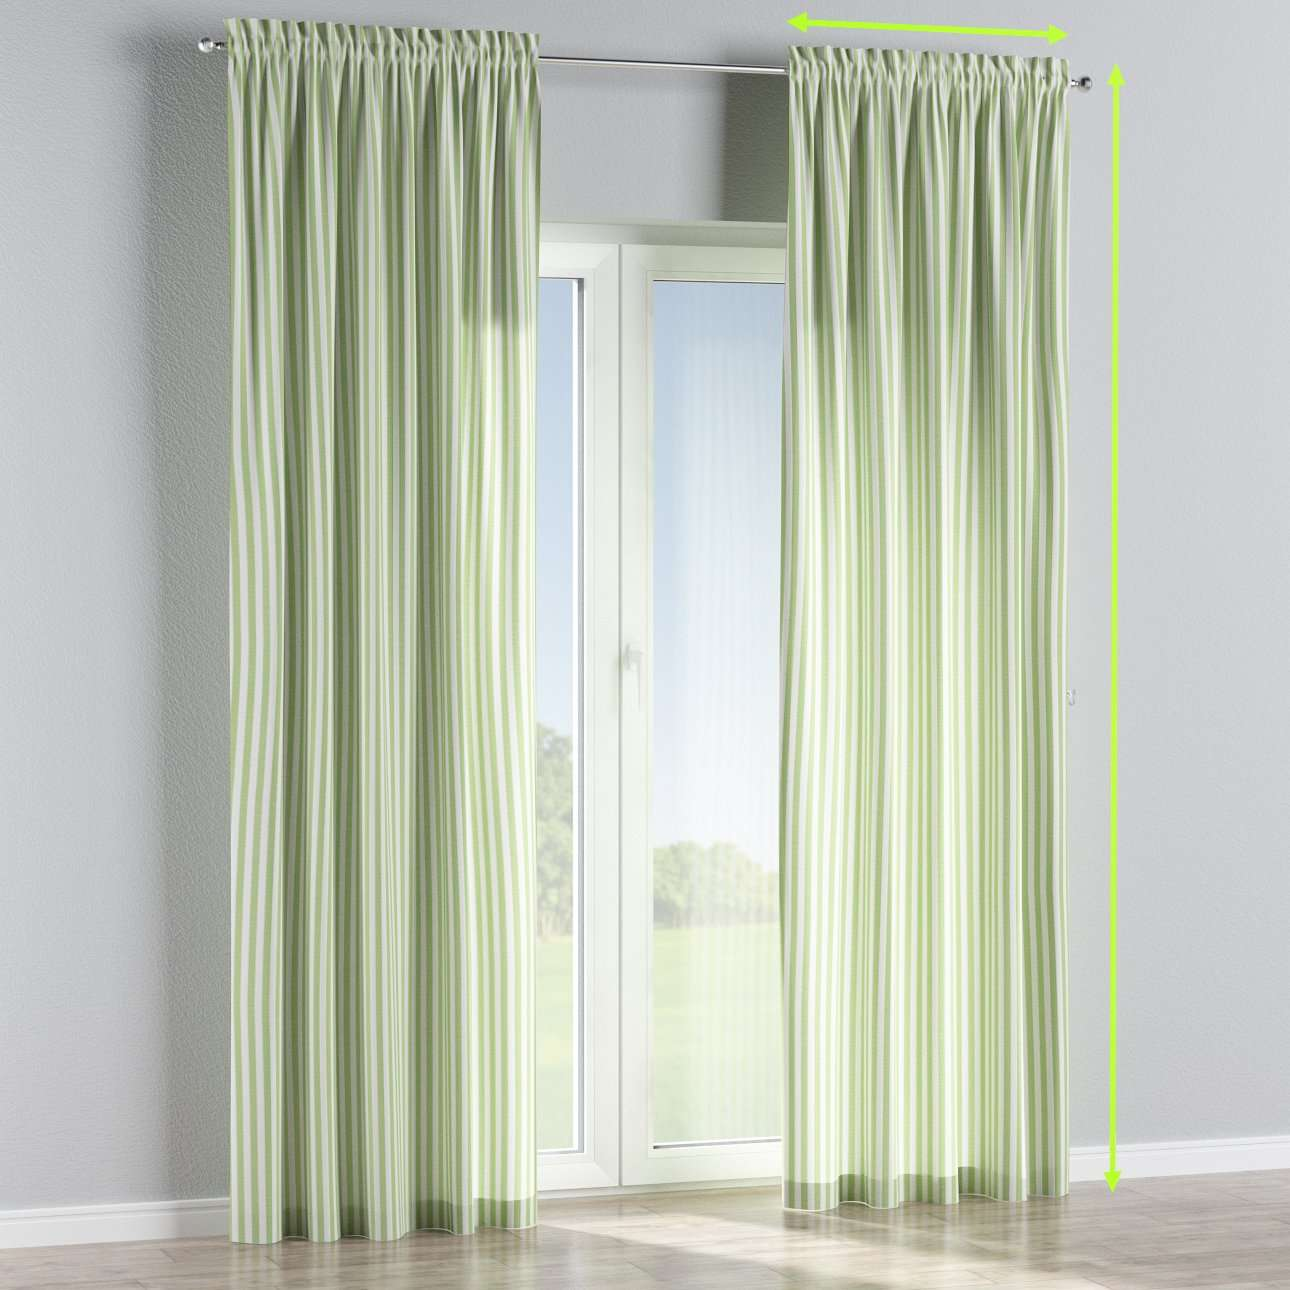 Slot and frill lined curtains in collection Quadro, fabric: 136-35